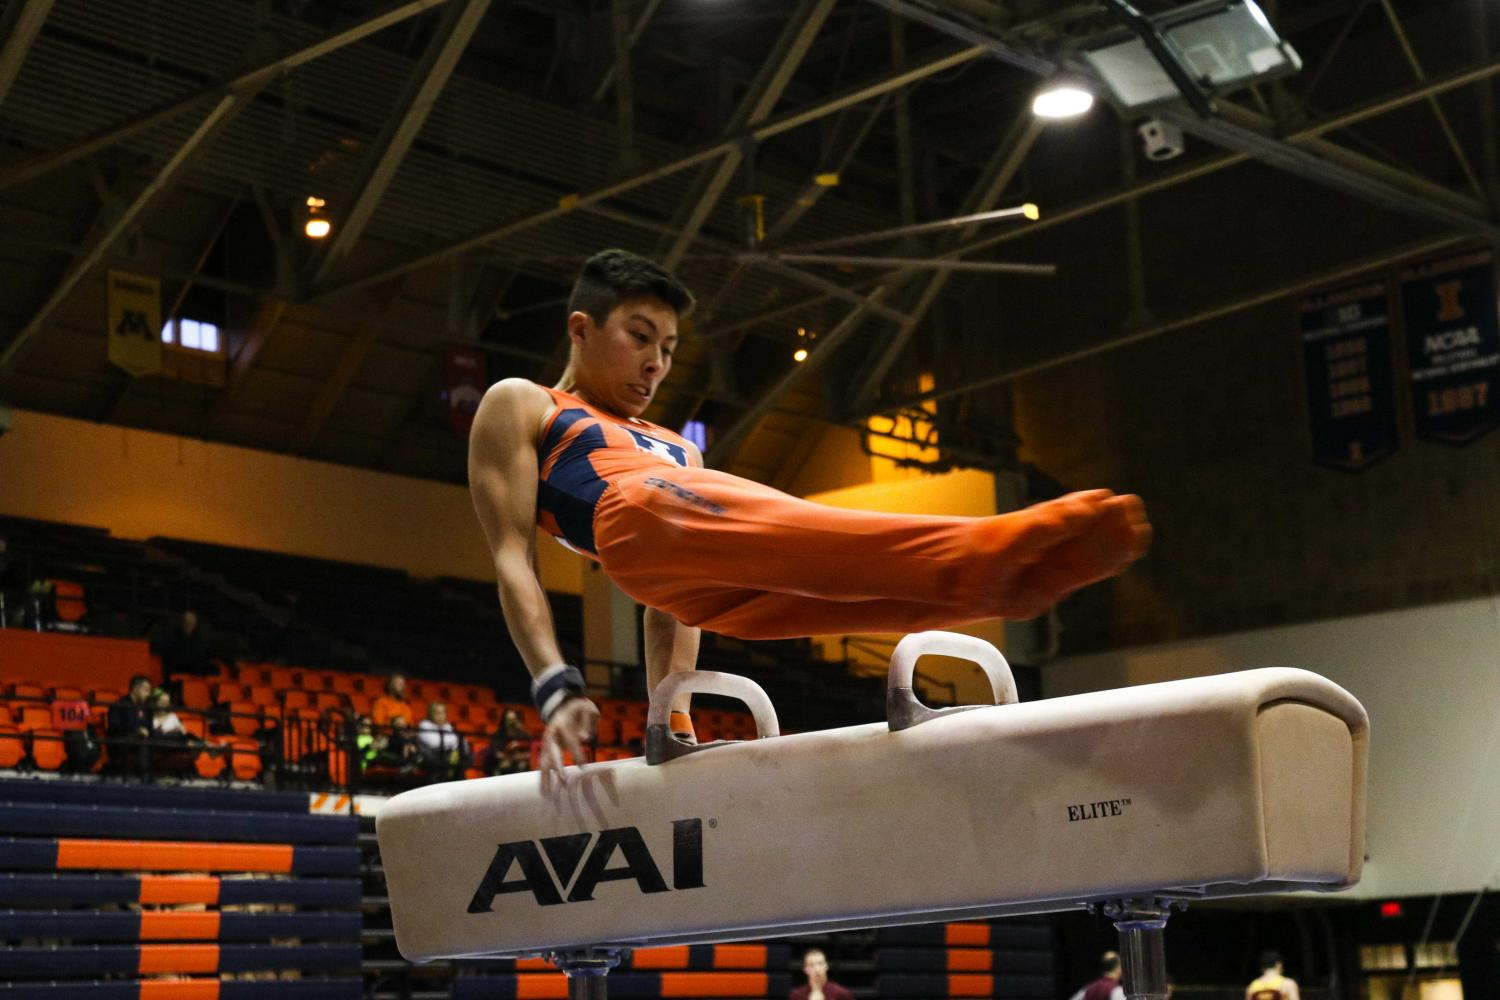 BRIAN+BAUER+The+Daily+Illini%0ABrandon+Ngai+swings+on+the+pommel+horse+in+the+meet+against+Minnesota+at+Huff+Hall+on+Jan.+28.+Illinois+finished+third+at+the+NCAA+championships%2C+with+Ngai+taking+the+pommel+horse+title+with+a+score+of+14.825.